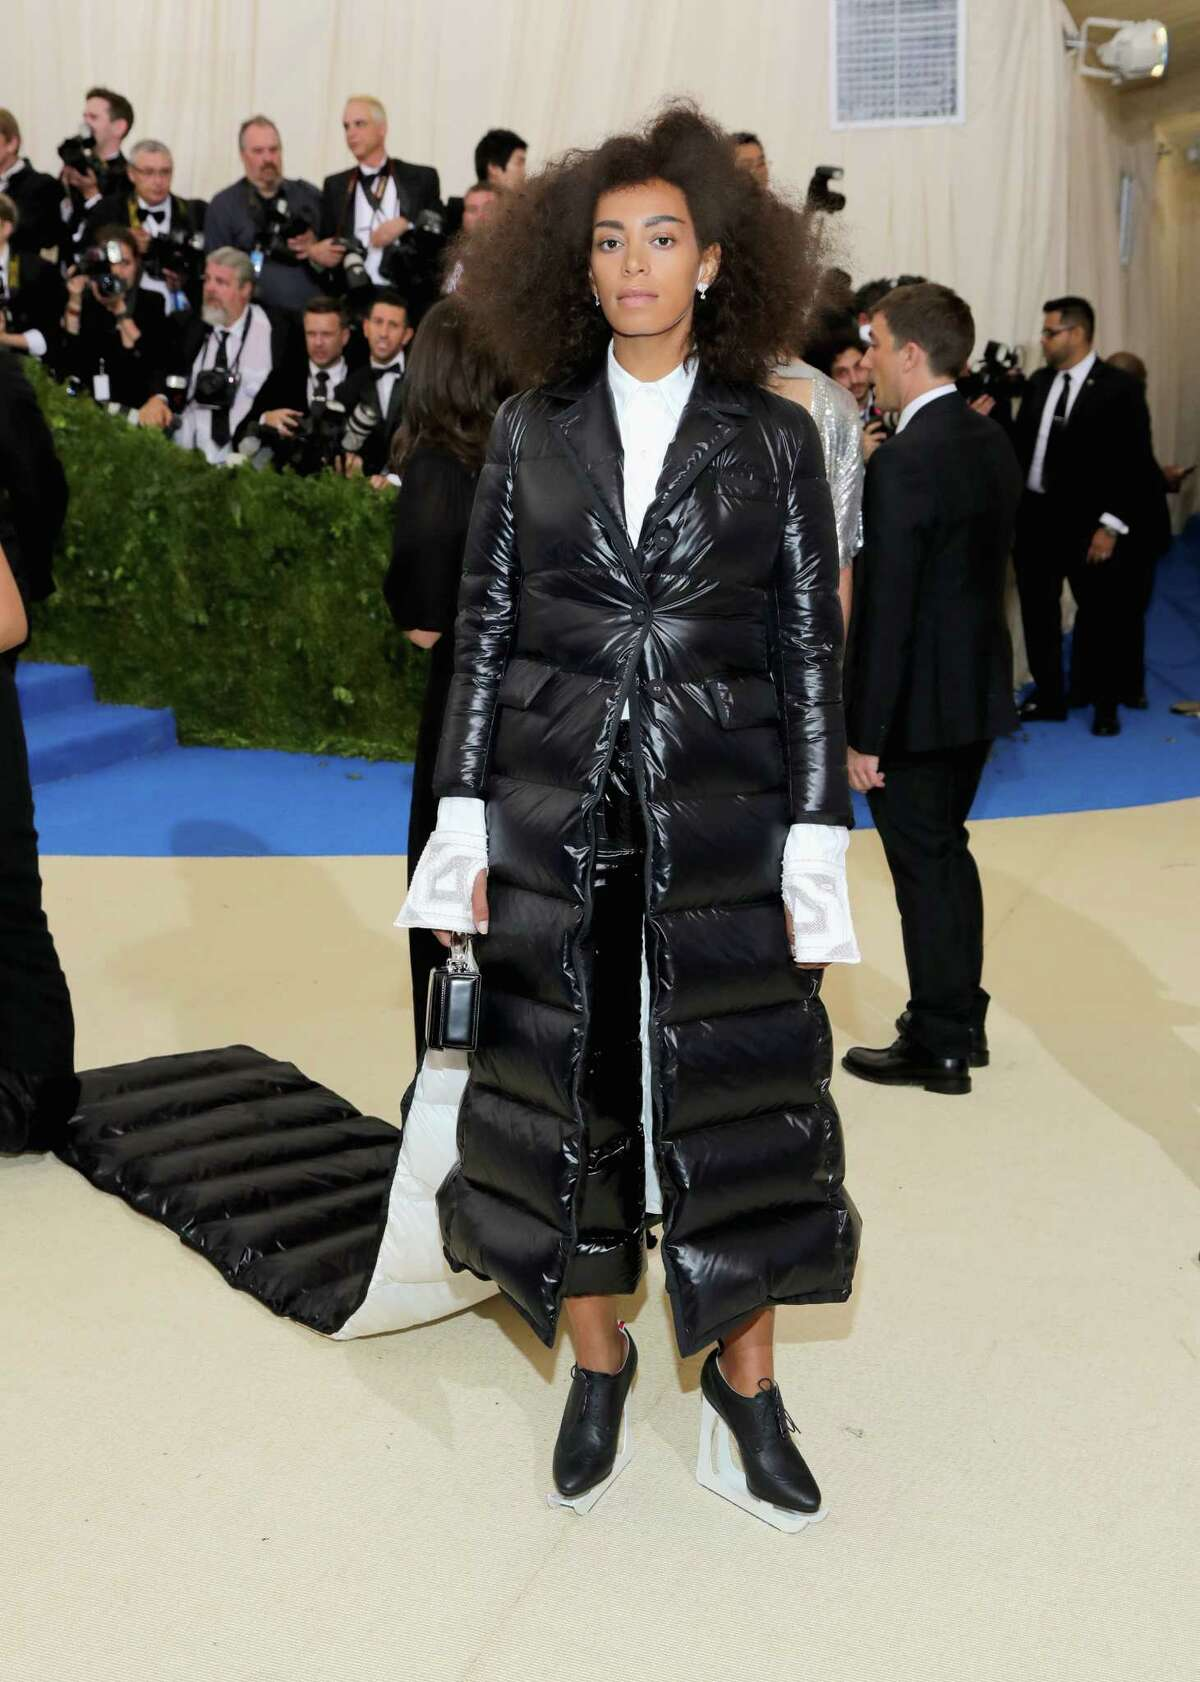 Solange Knowles recently opened up about being bullied, being a teen mom, losing her best friend to gun violence and other hardships she faced while growing up, and how everything has led to the woman she is today. >>KEEP CLICKING TO SEE PHOTOS OF SOLANGE THOUGH THE YEARS.